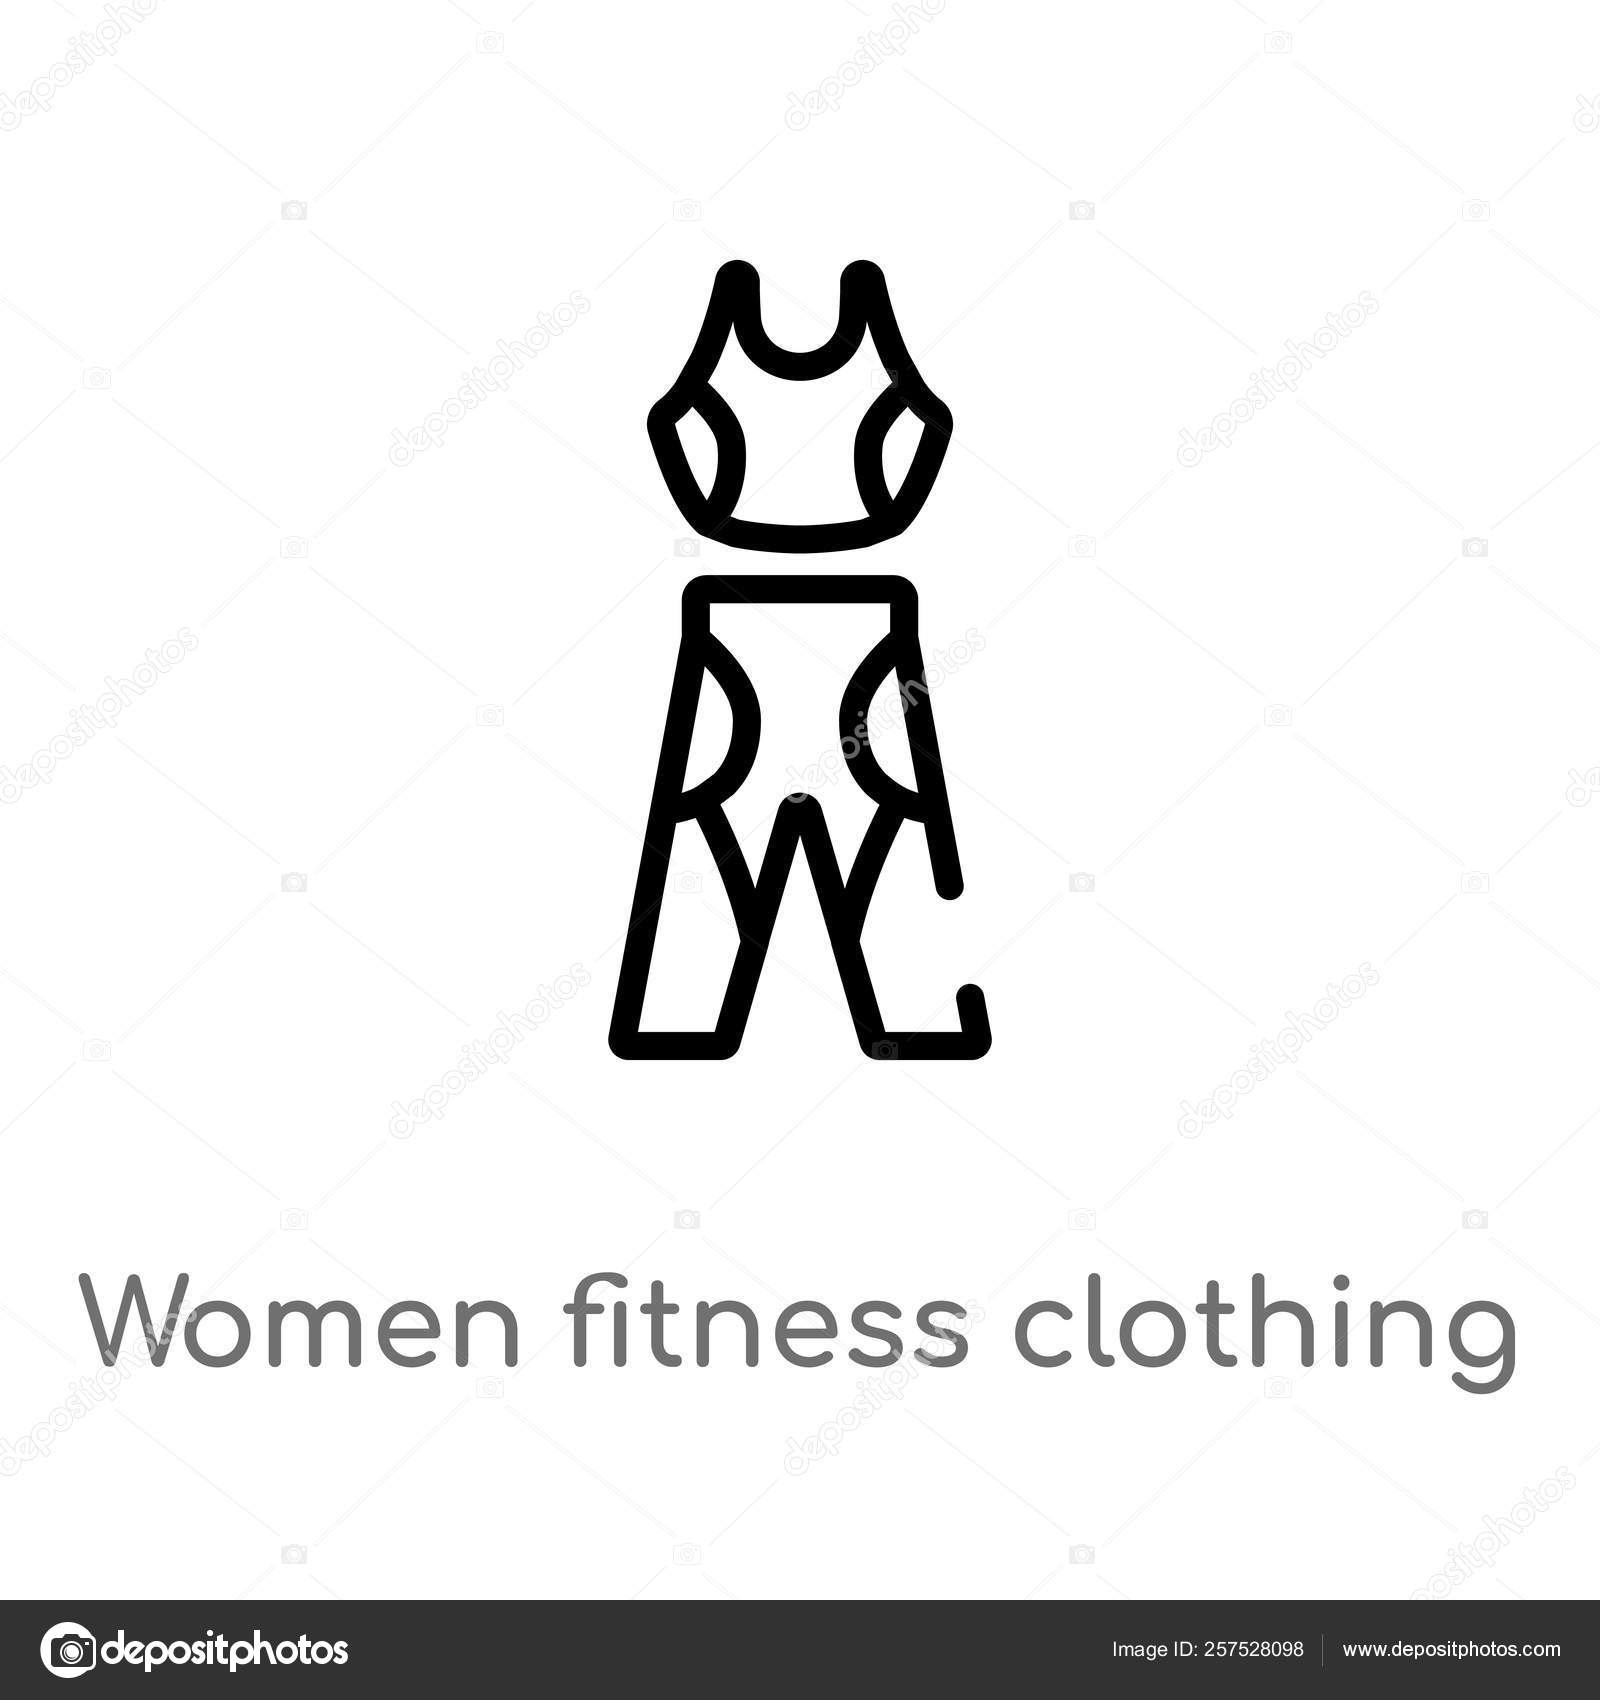 Outline Women Fitness Clothing Vector Icon Isolated Black